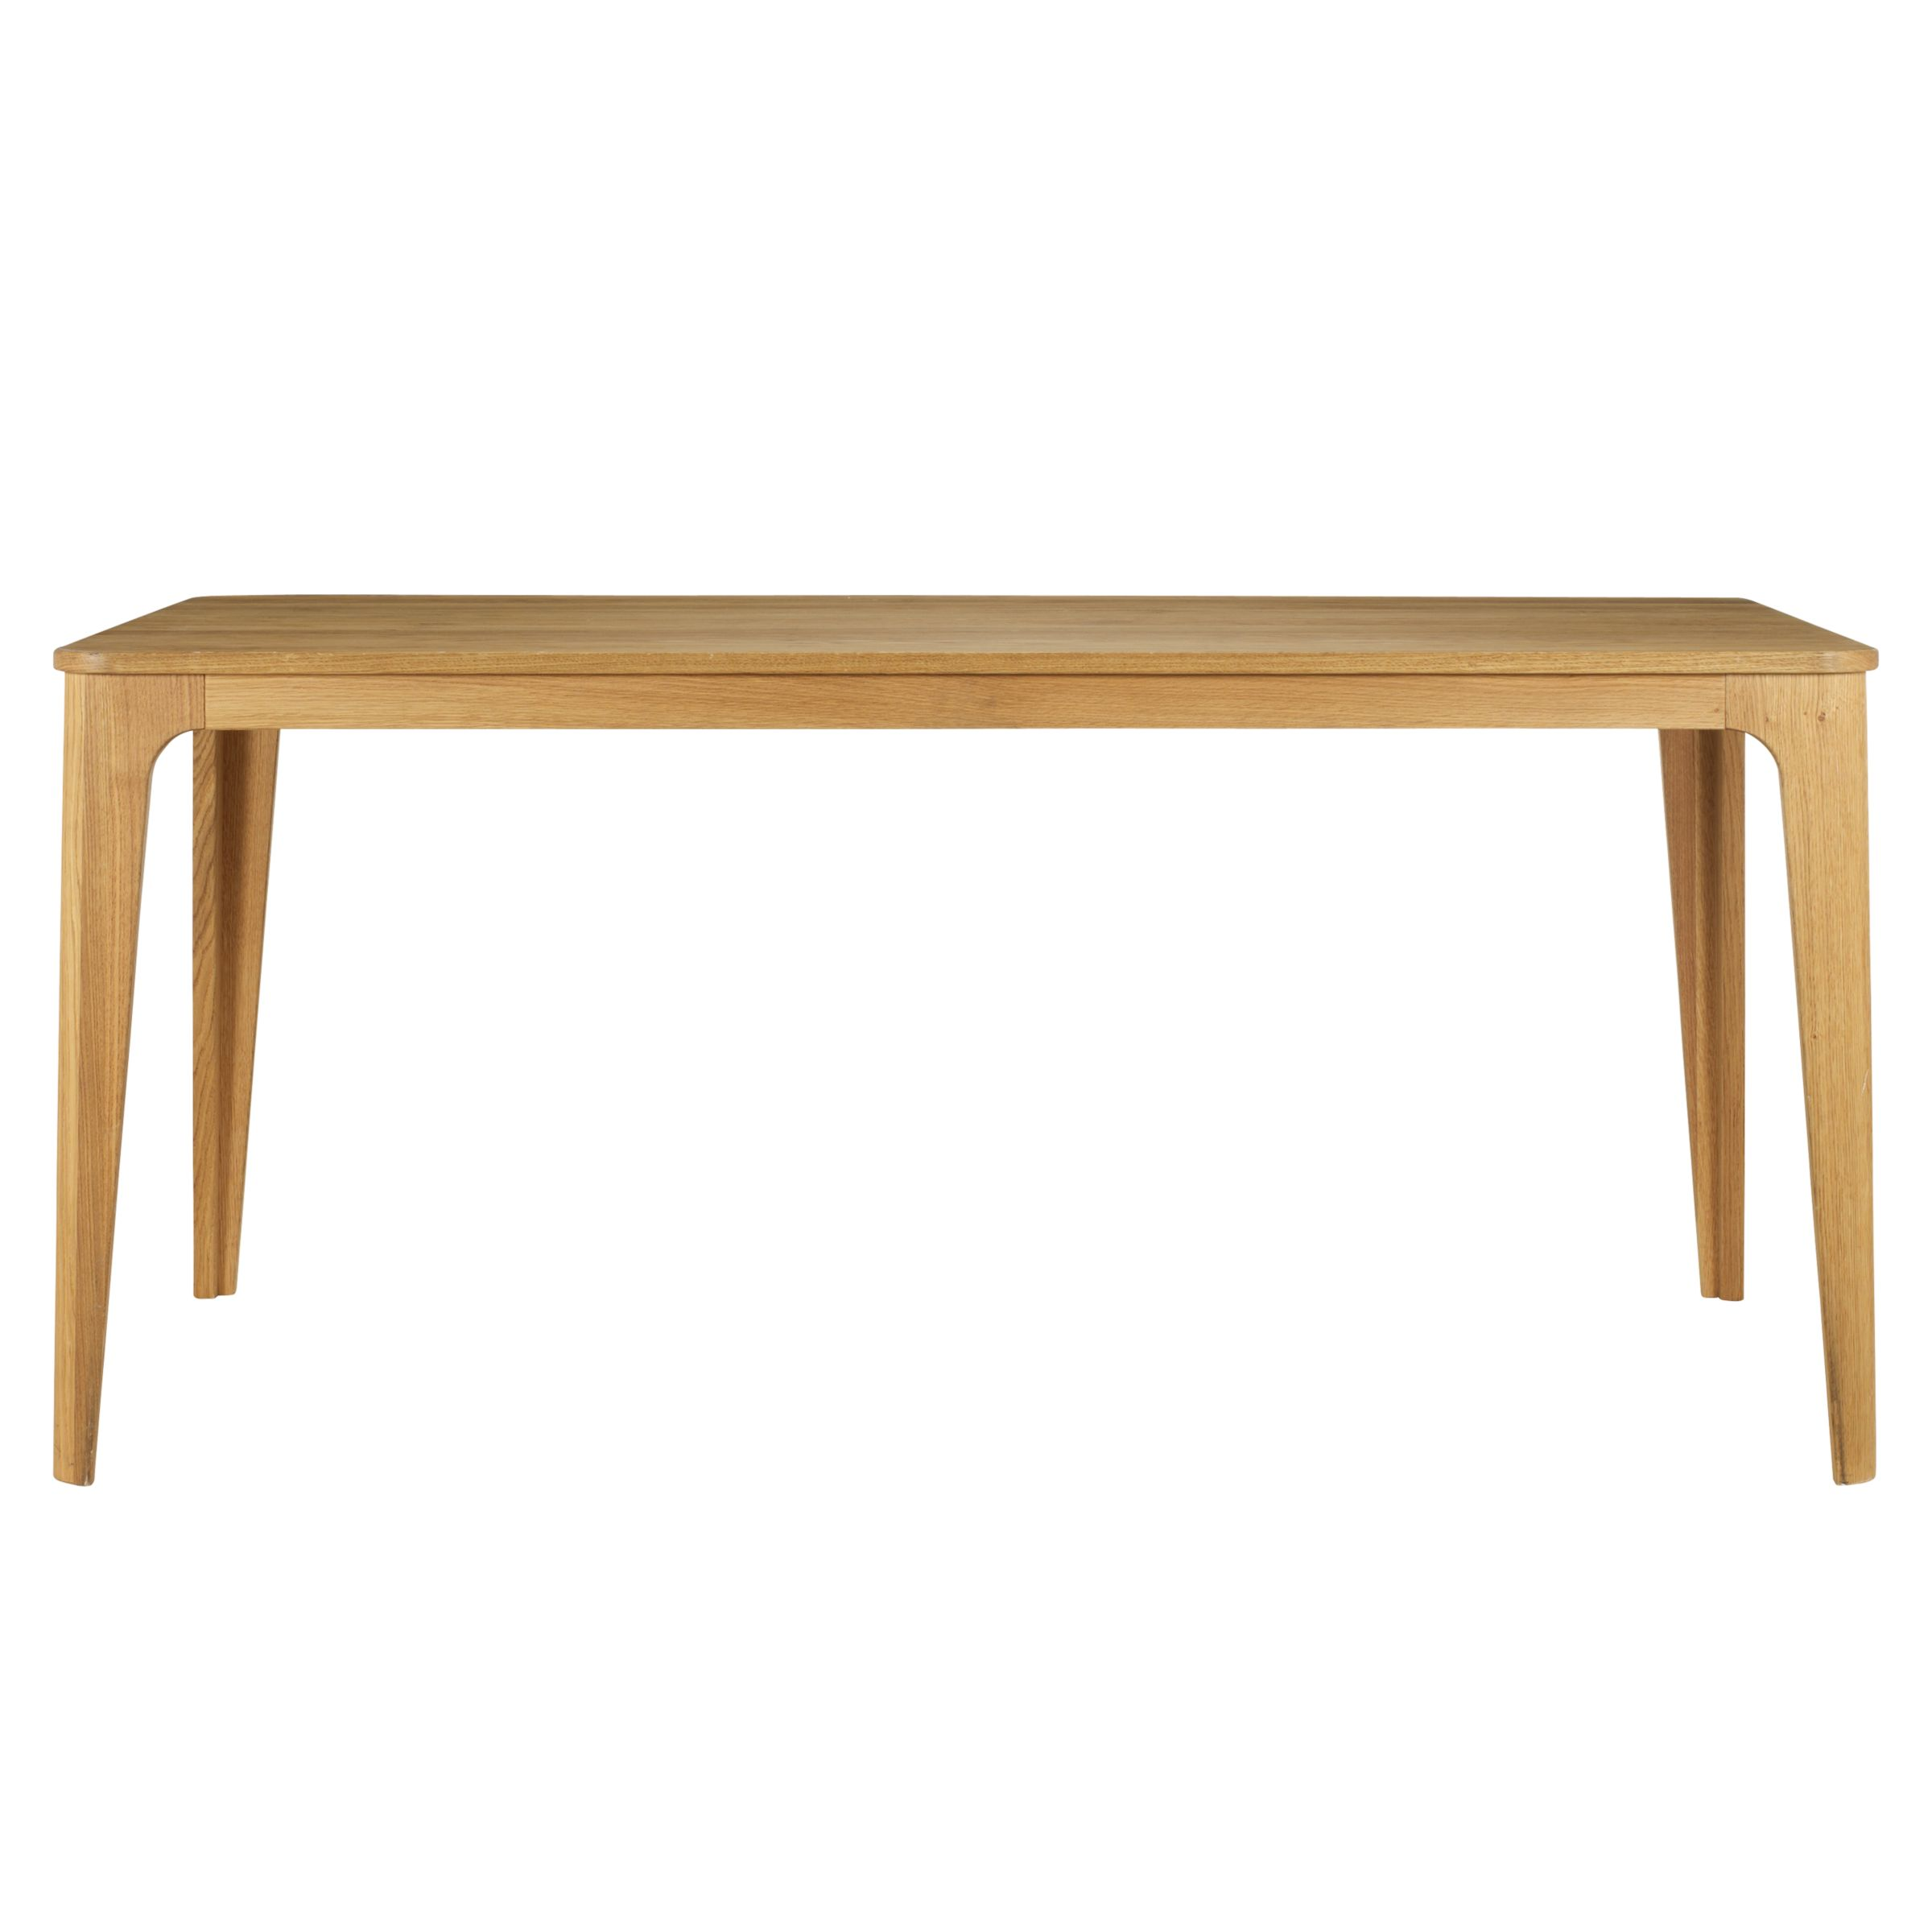 john lewis dining tables : 231012309 from www.comparestoreprices.co.uk size 1600 x 1600 jpeg 94kB